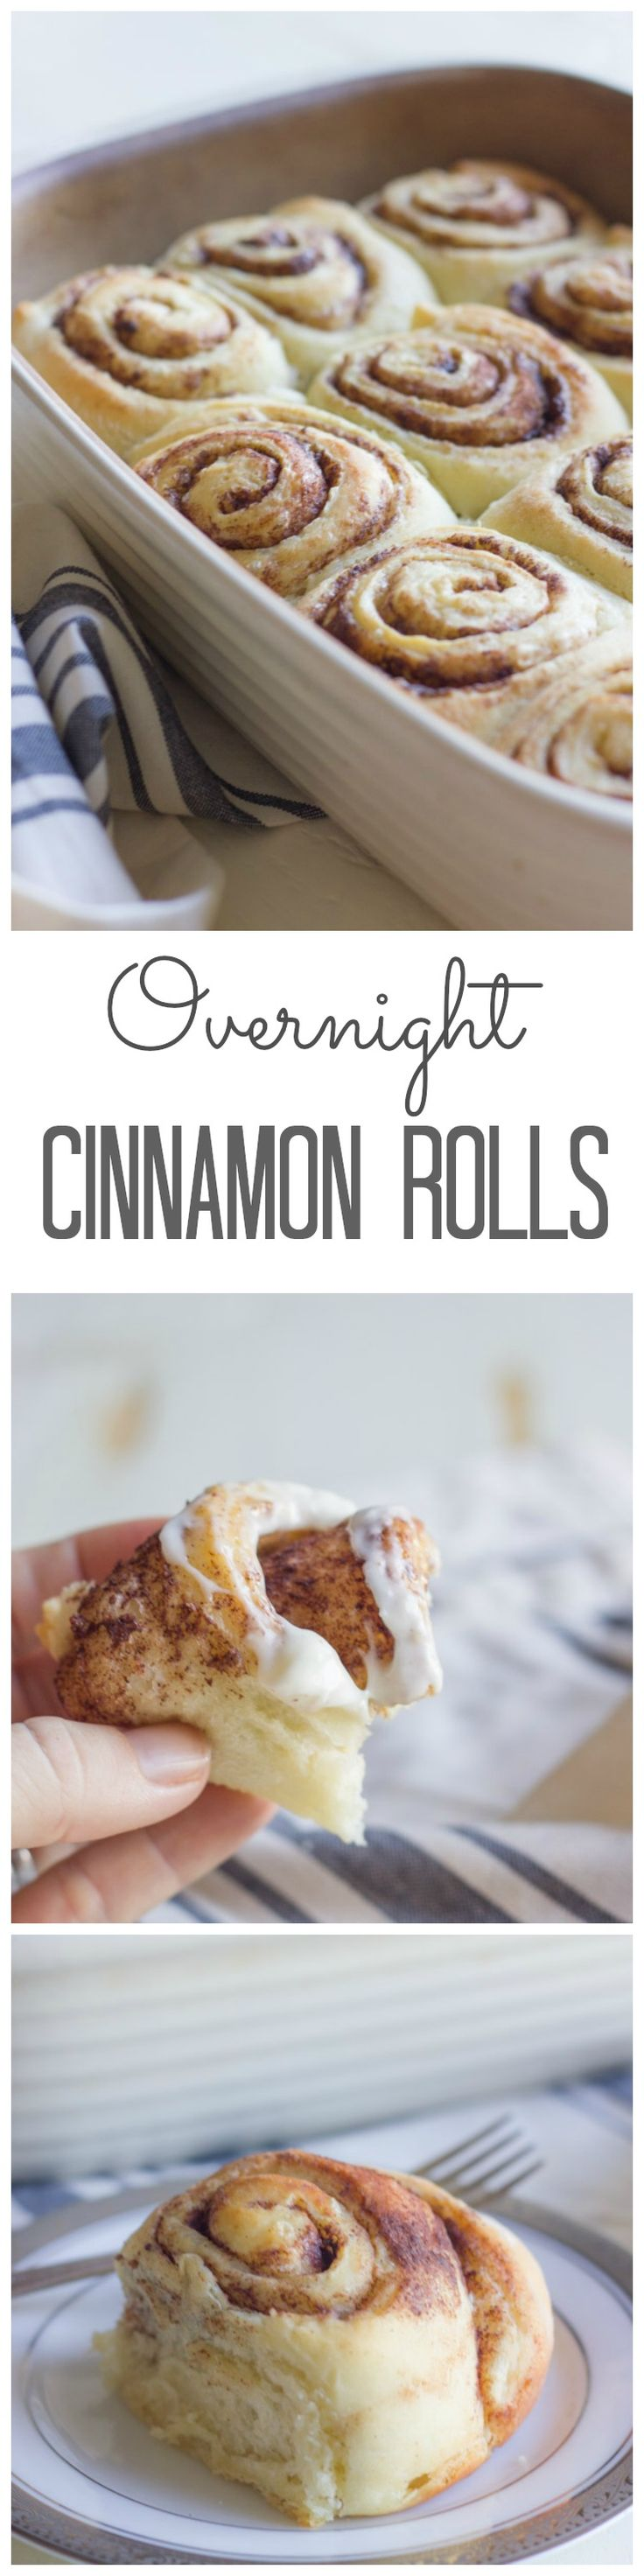 ... Rolls Cream Cheese, Christmas Morning, Cinnamon Rolls Overnight